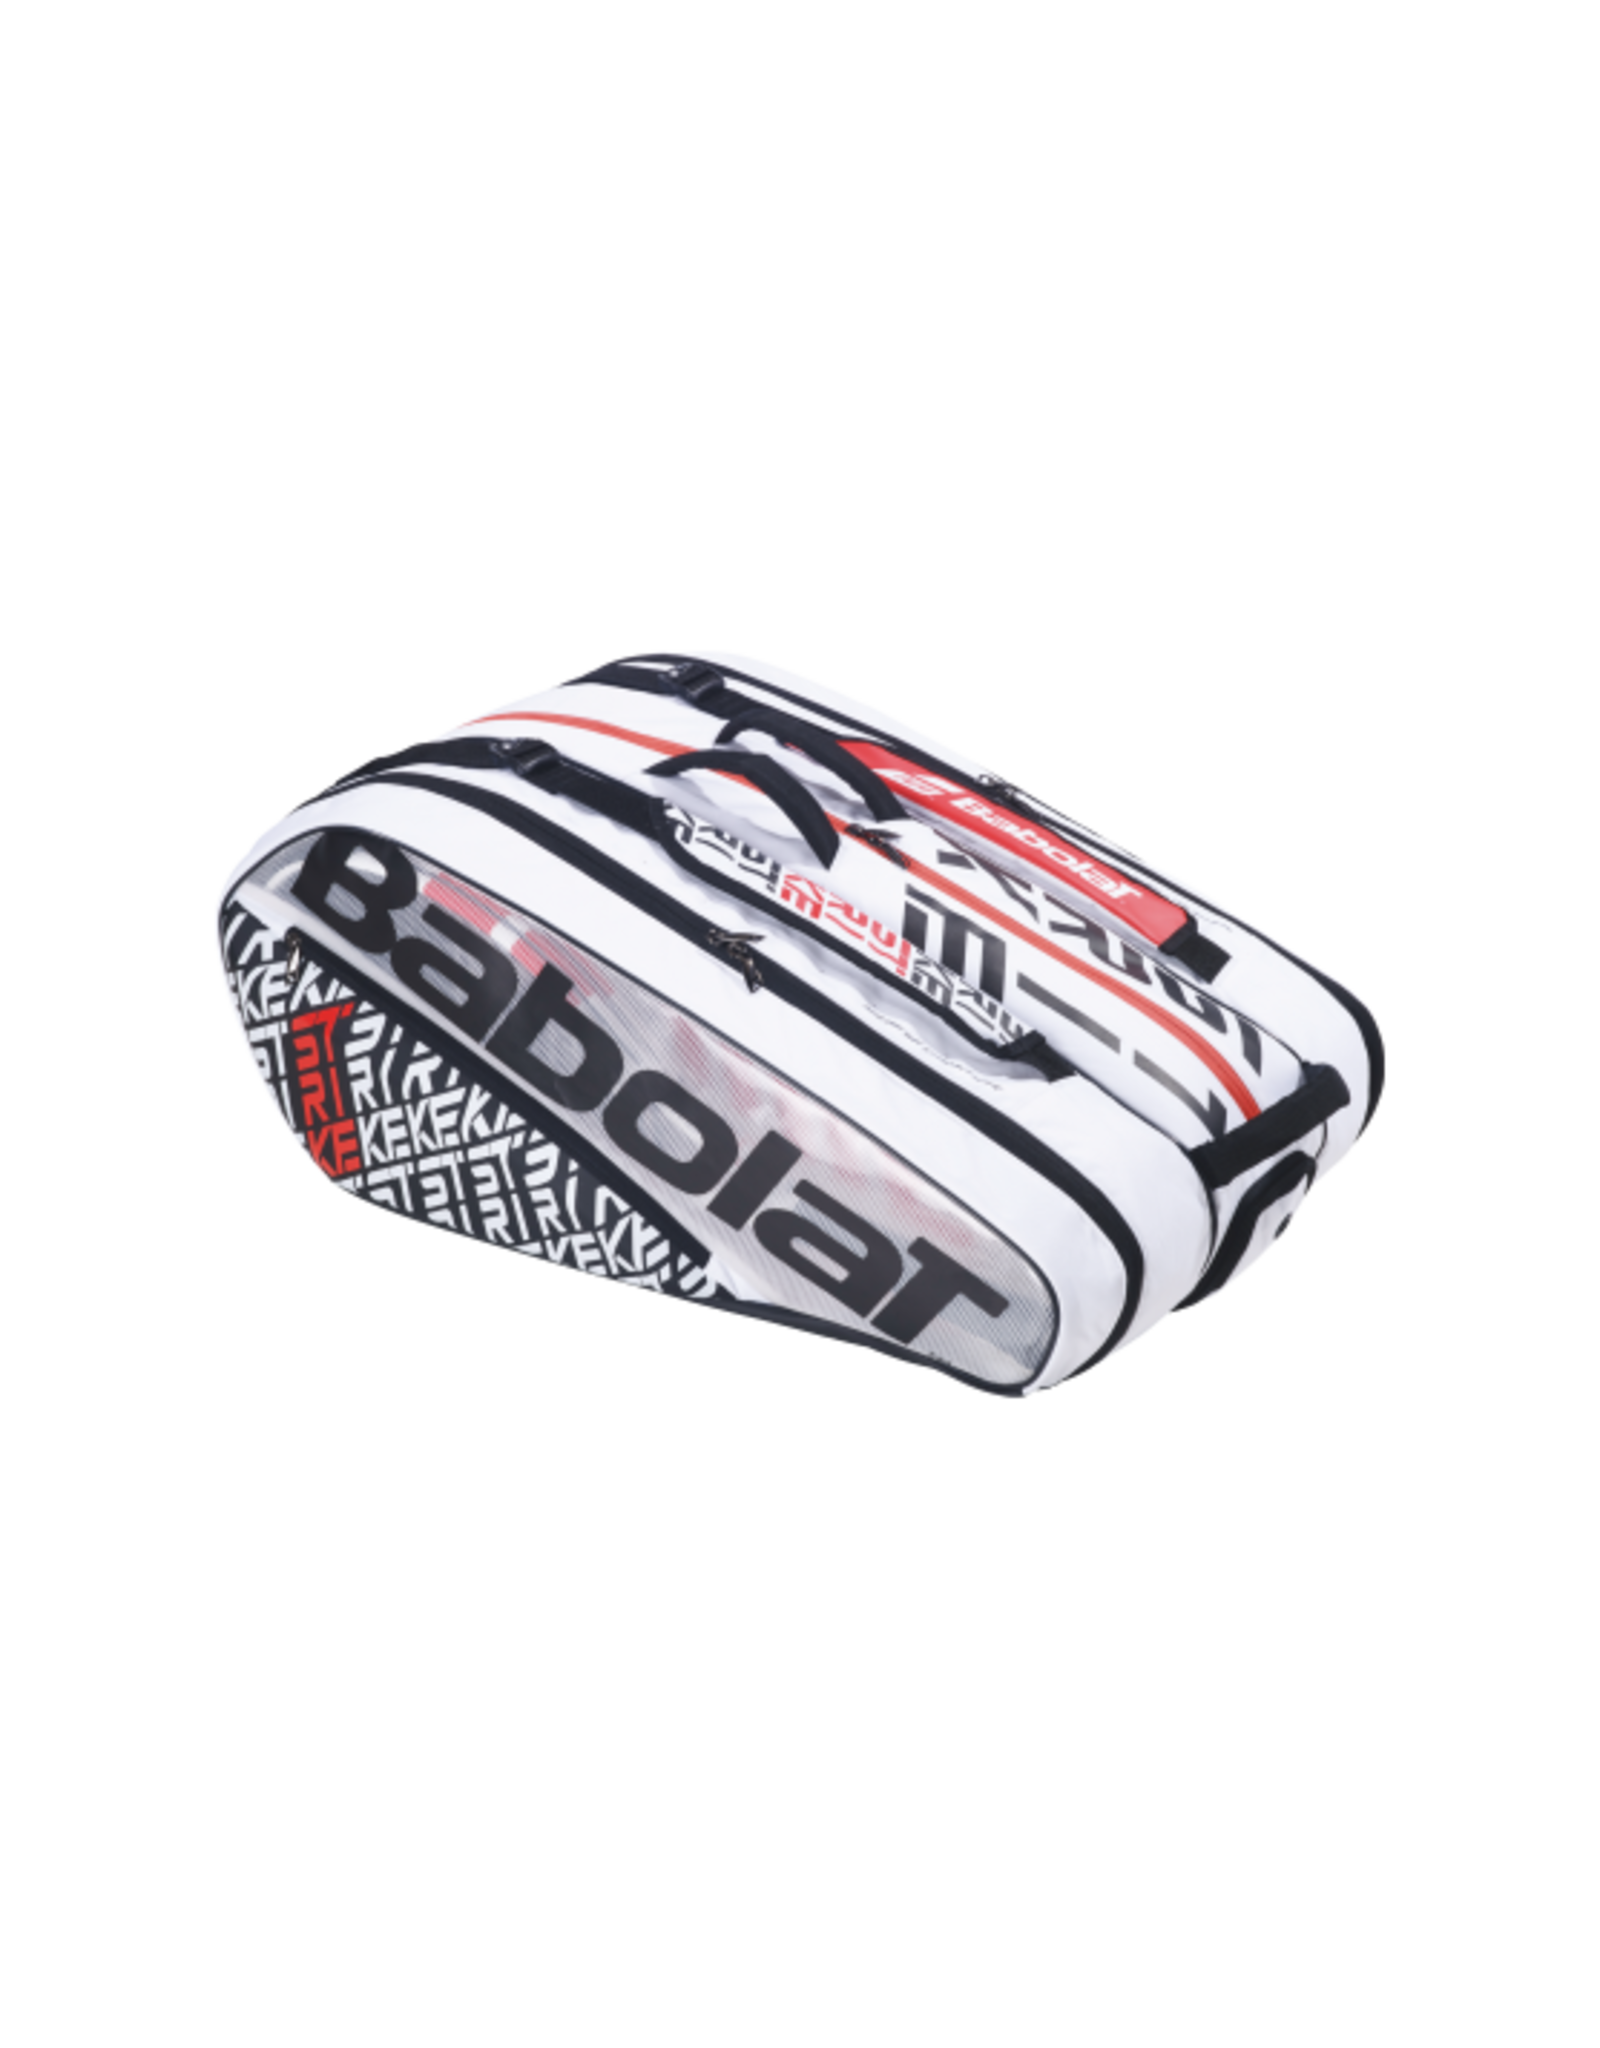 Babolat Babolat Pure Strike RH x 12 Tennis Bag